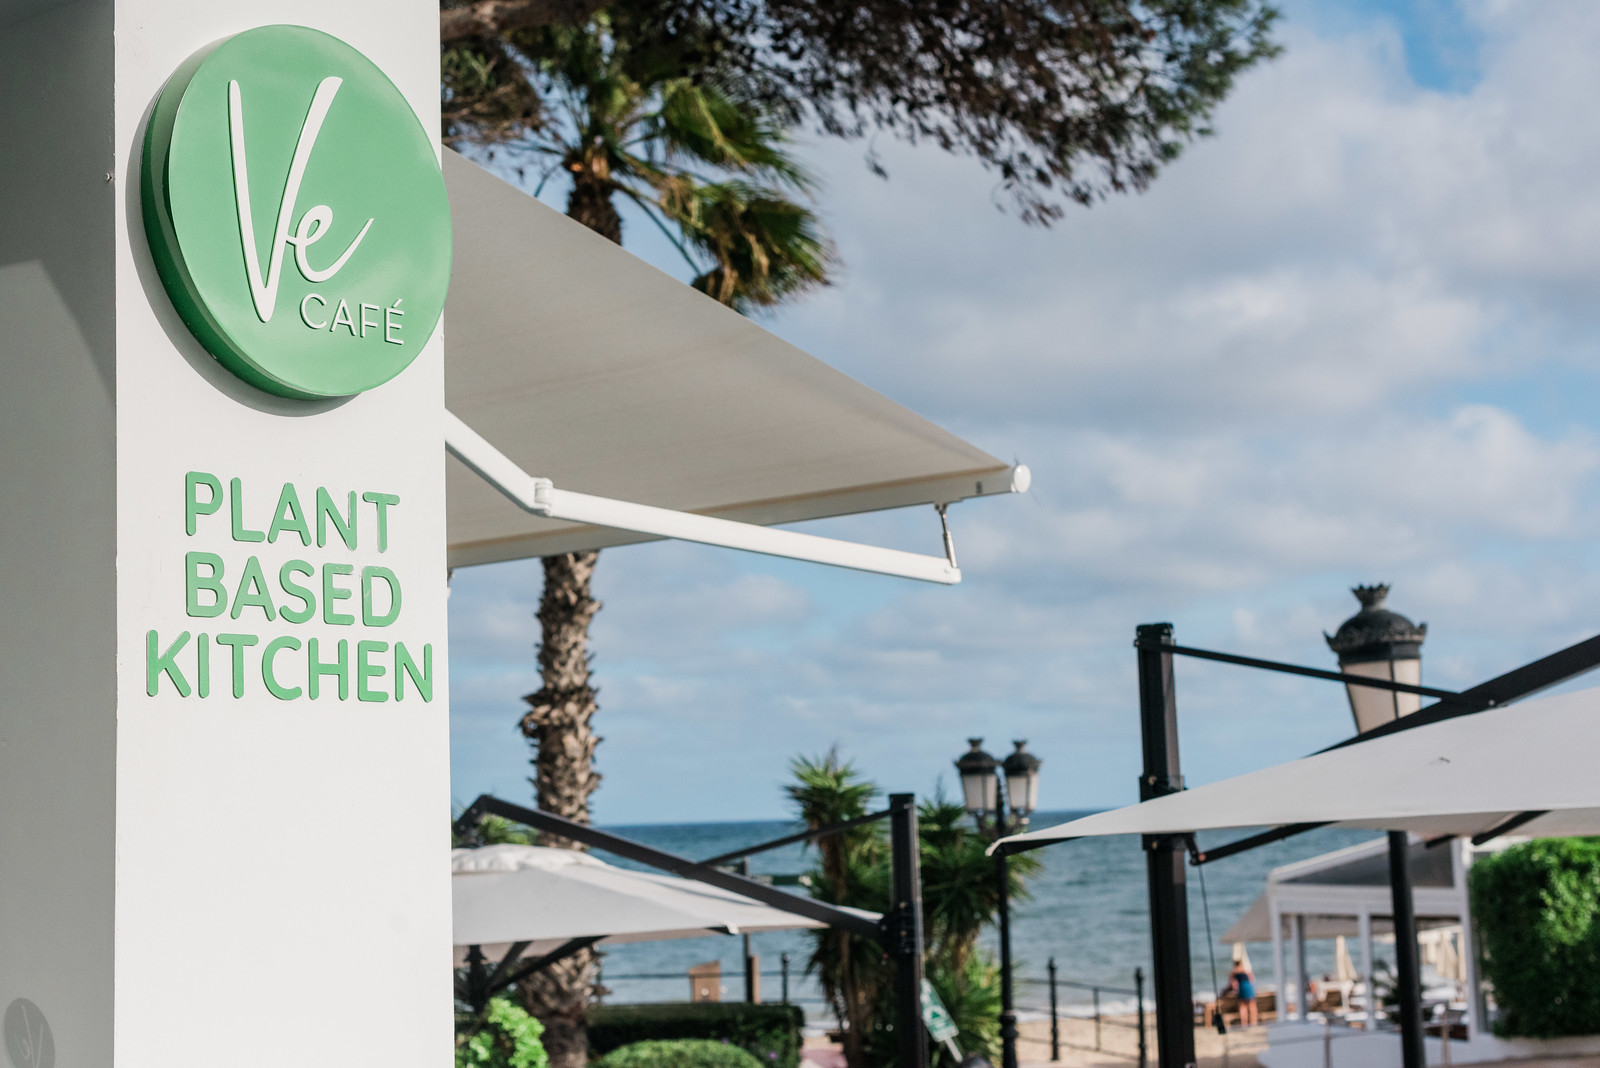 https://www.white-ibiza.com/wp-content/uploads/2020/03/white-ibiza-healthy-eating-ve-cafe-2020-01.jpg